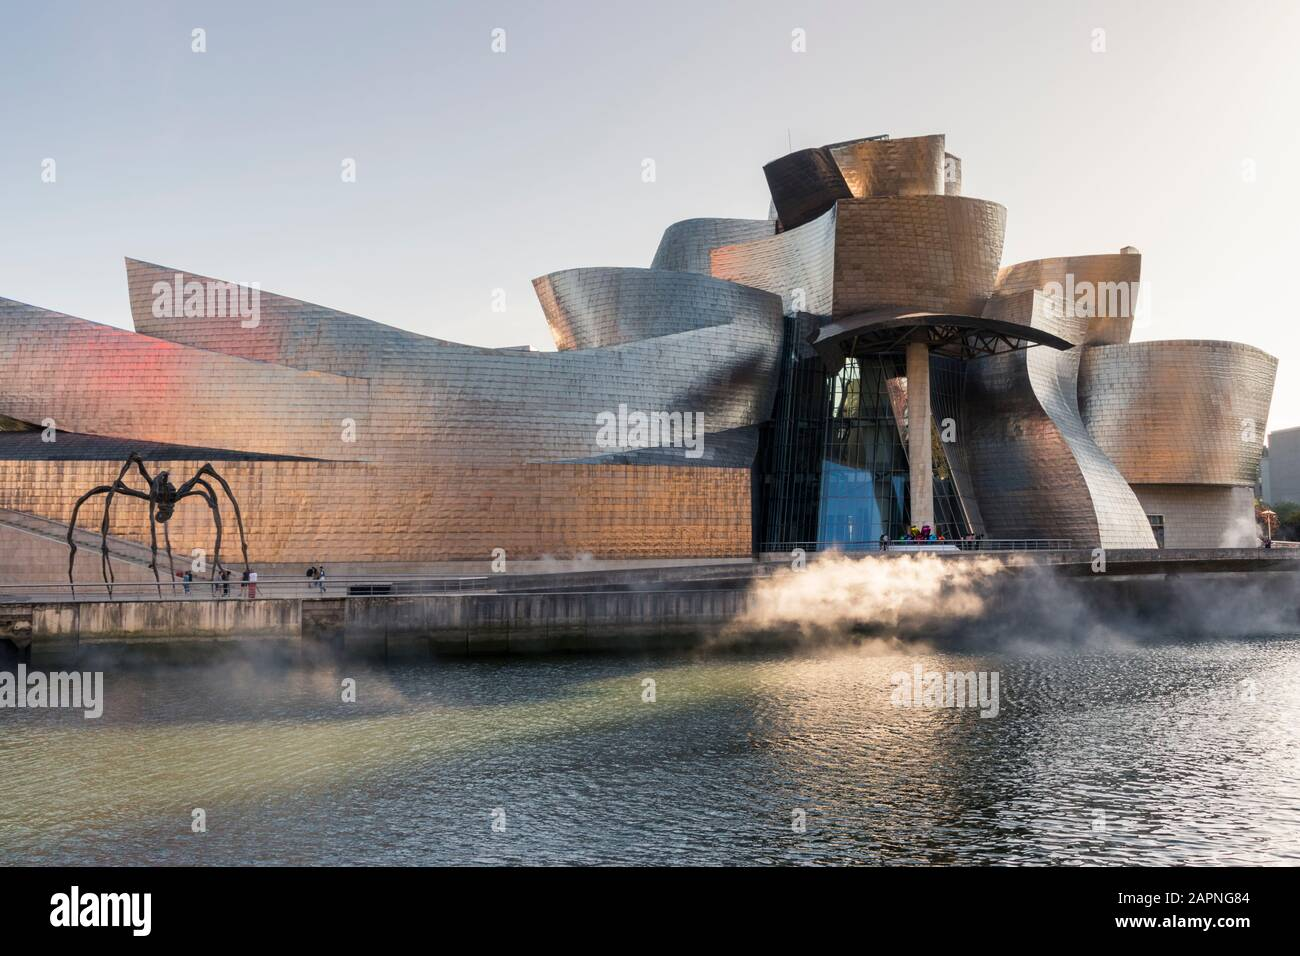 Maman, a giant spider sculpture outside the Guggenheim Museum in Bilbao, Spain. Stock Photo